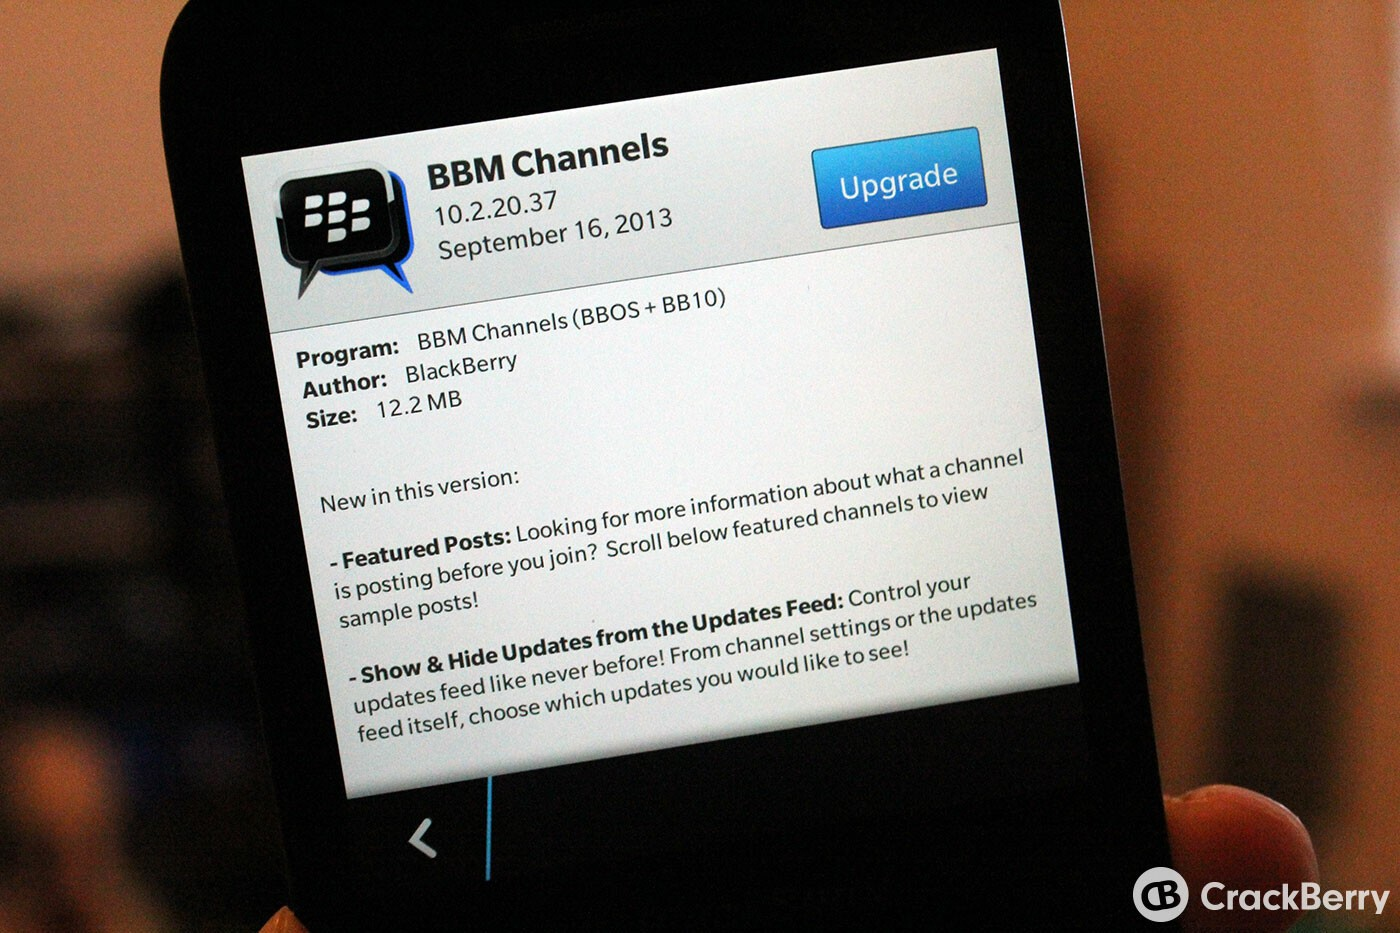 BBM Channels gets another update to v10.2.20.37 in BlackBerry Beta Zone